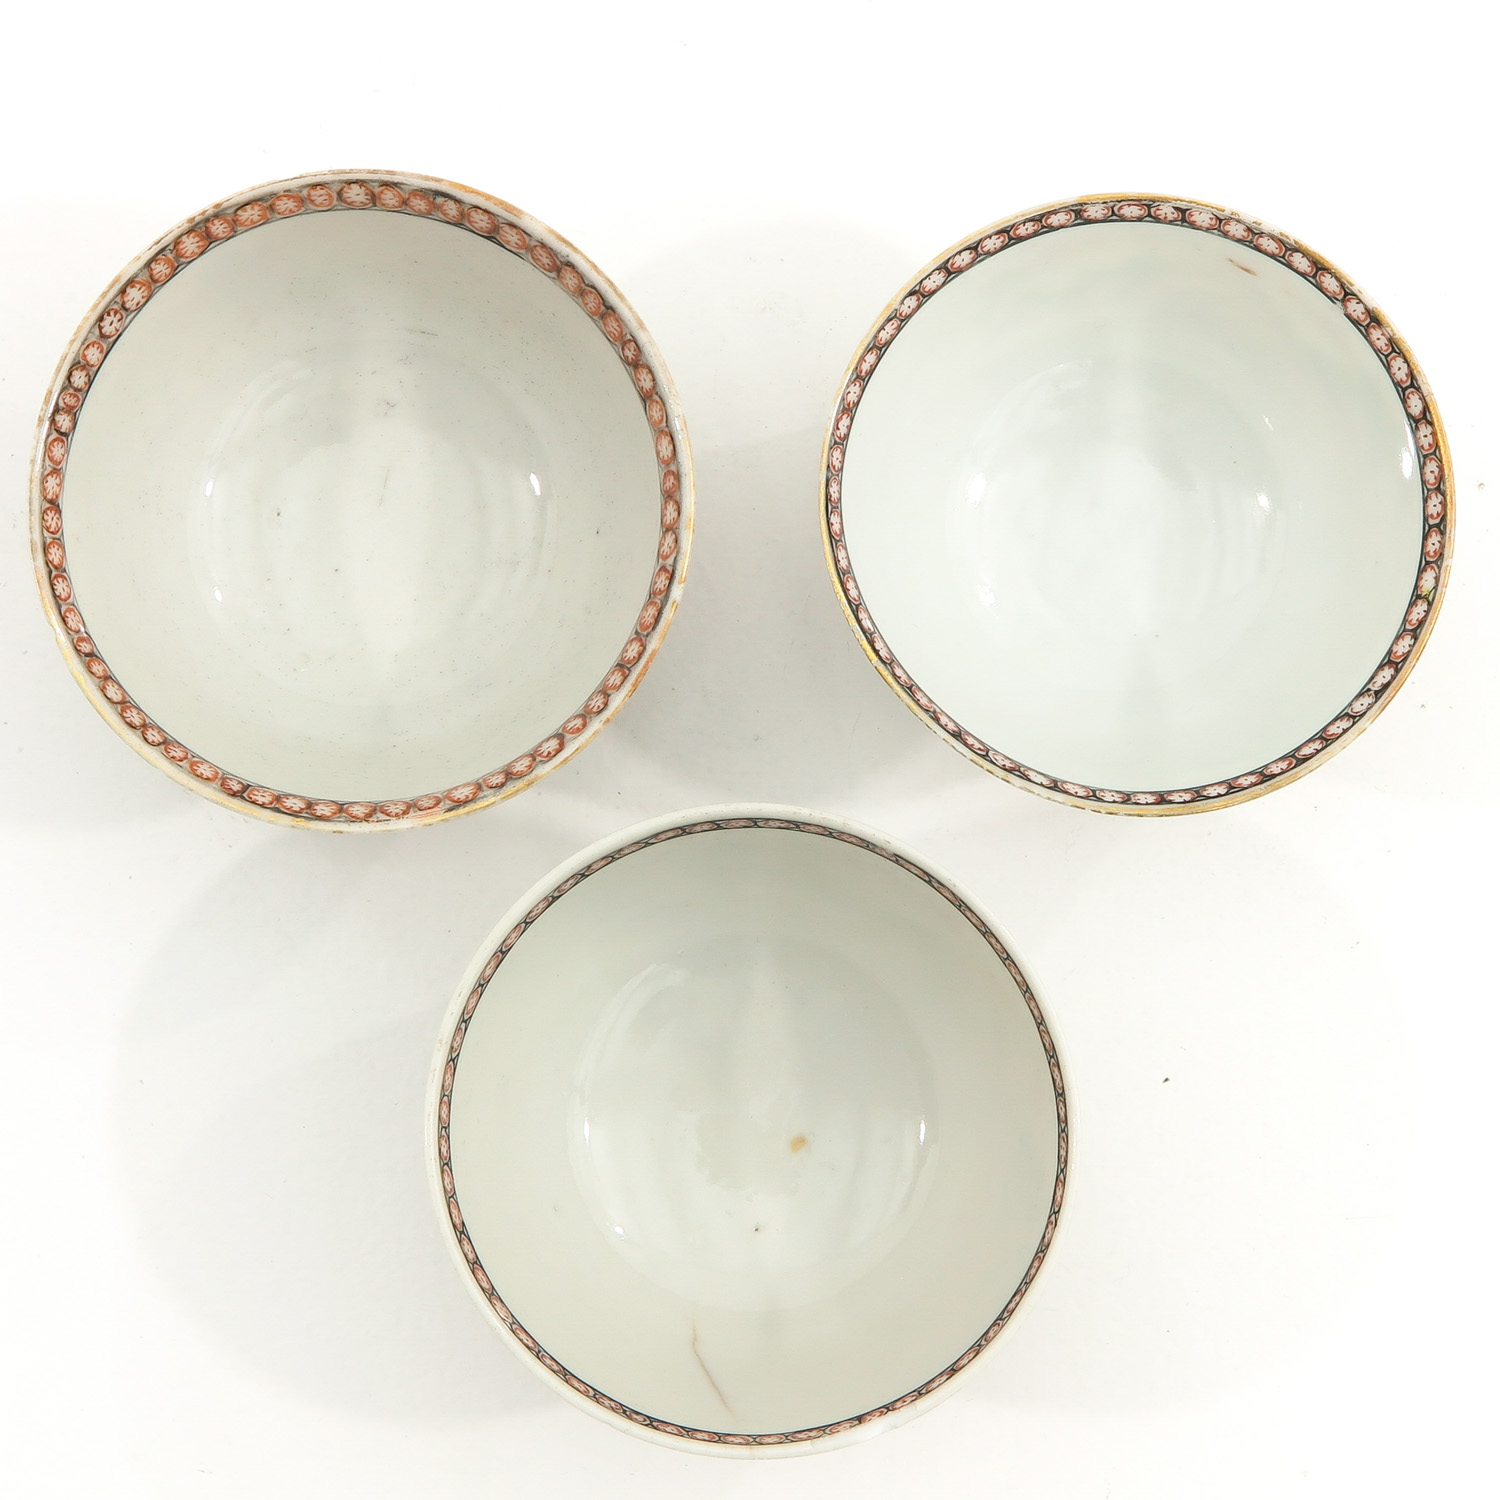 A Series of 3 Cups and Saucers - Image 5 of 10